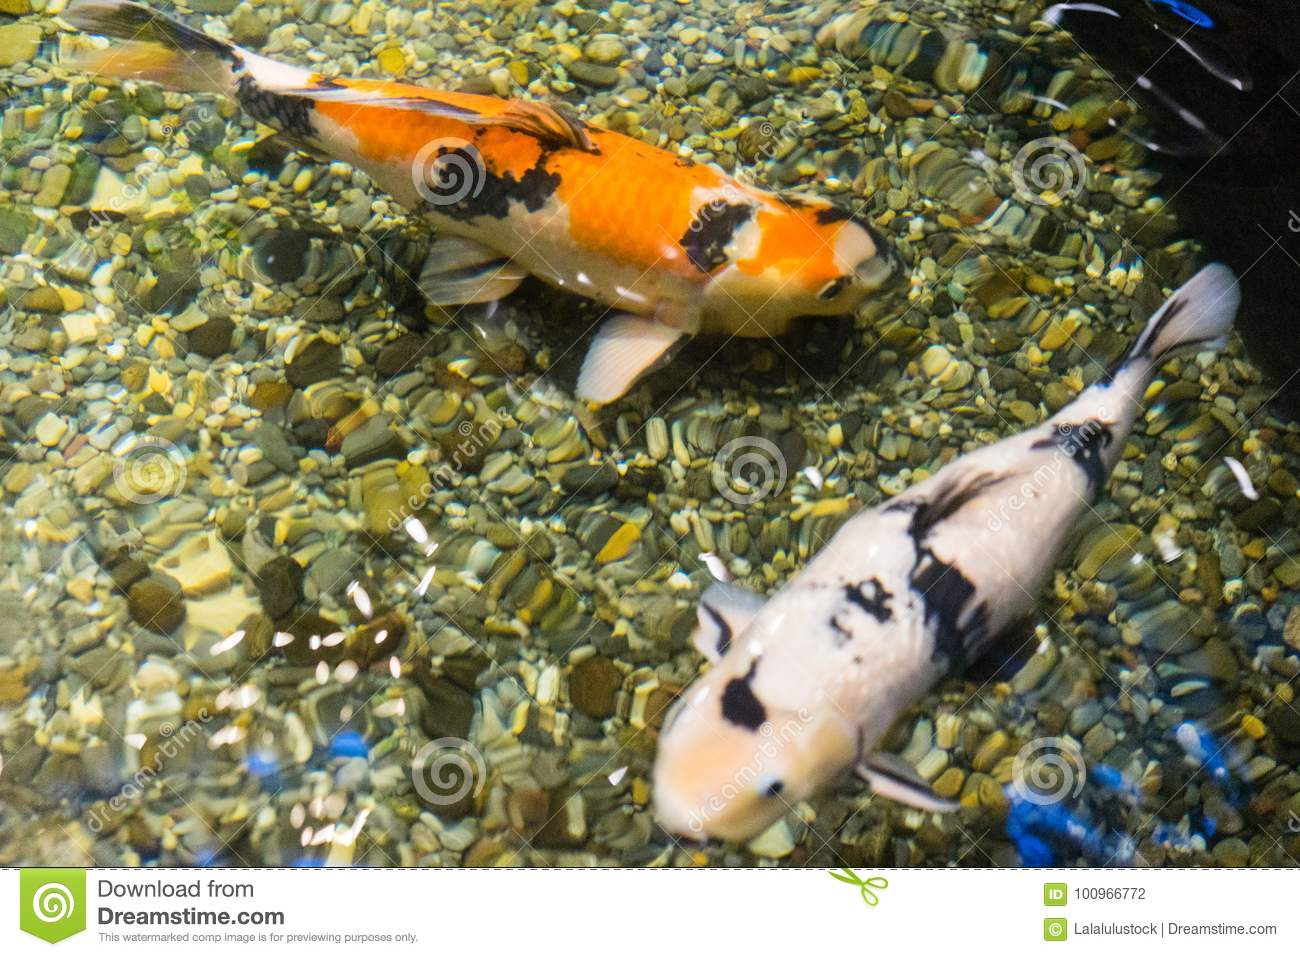 Koi fish in pond top view orange and white asian sign of luck and wealth